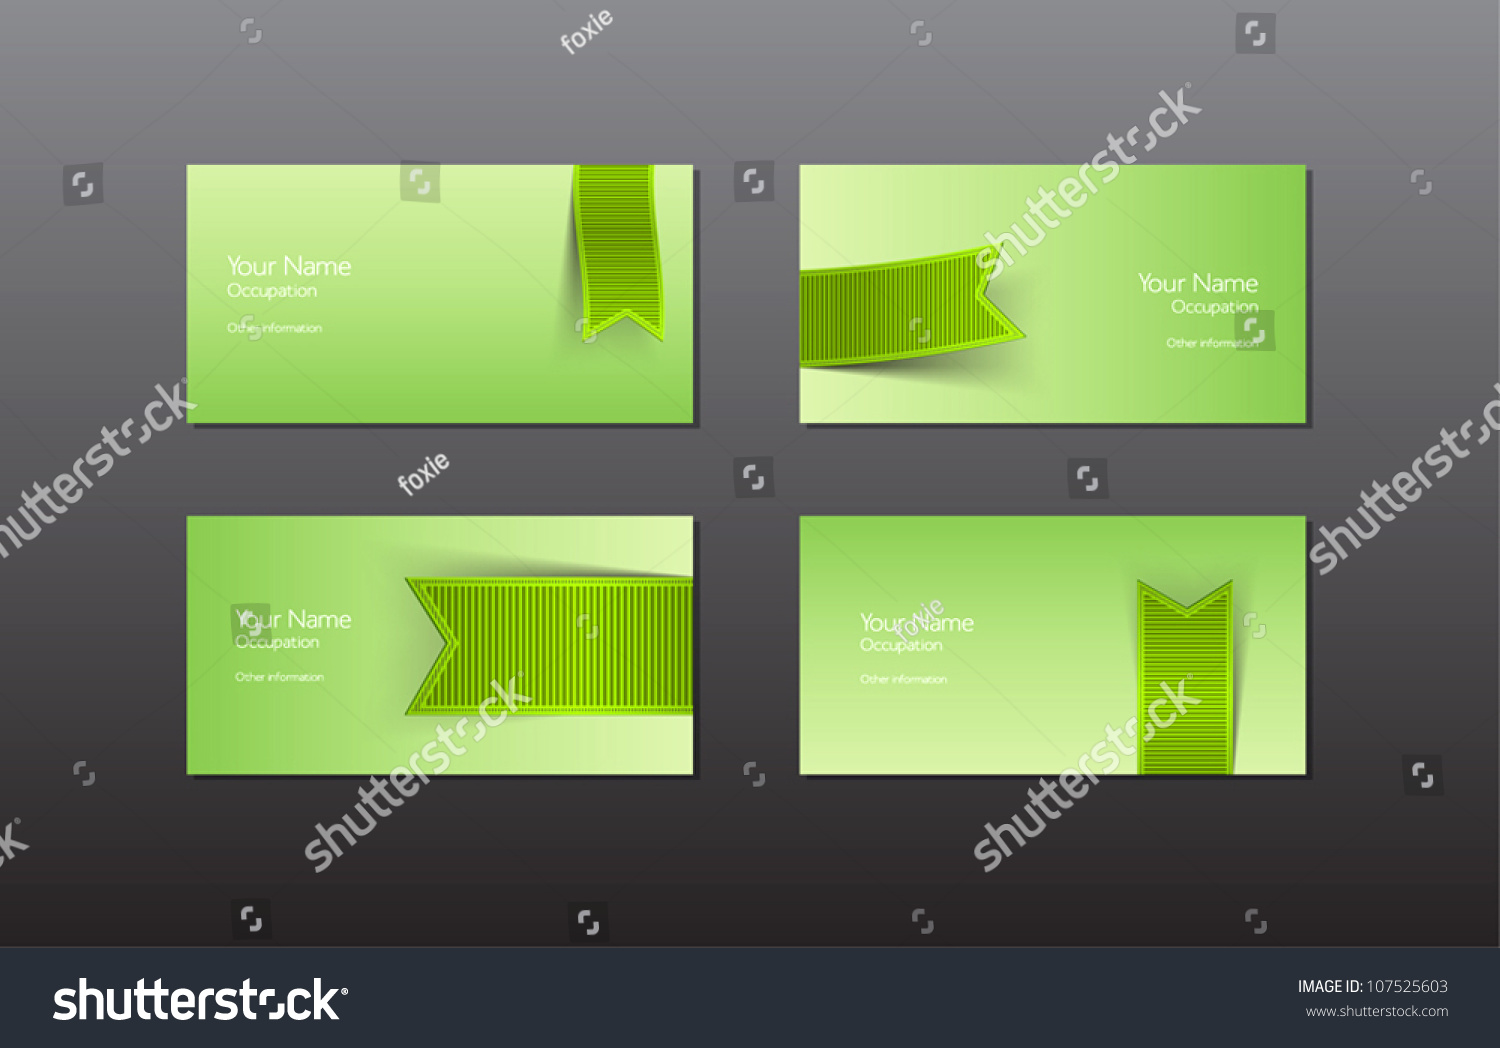 Abstract Vector Business Cards Banners Green Stock Vector ...